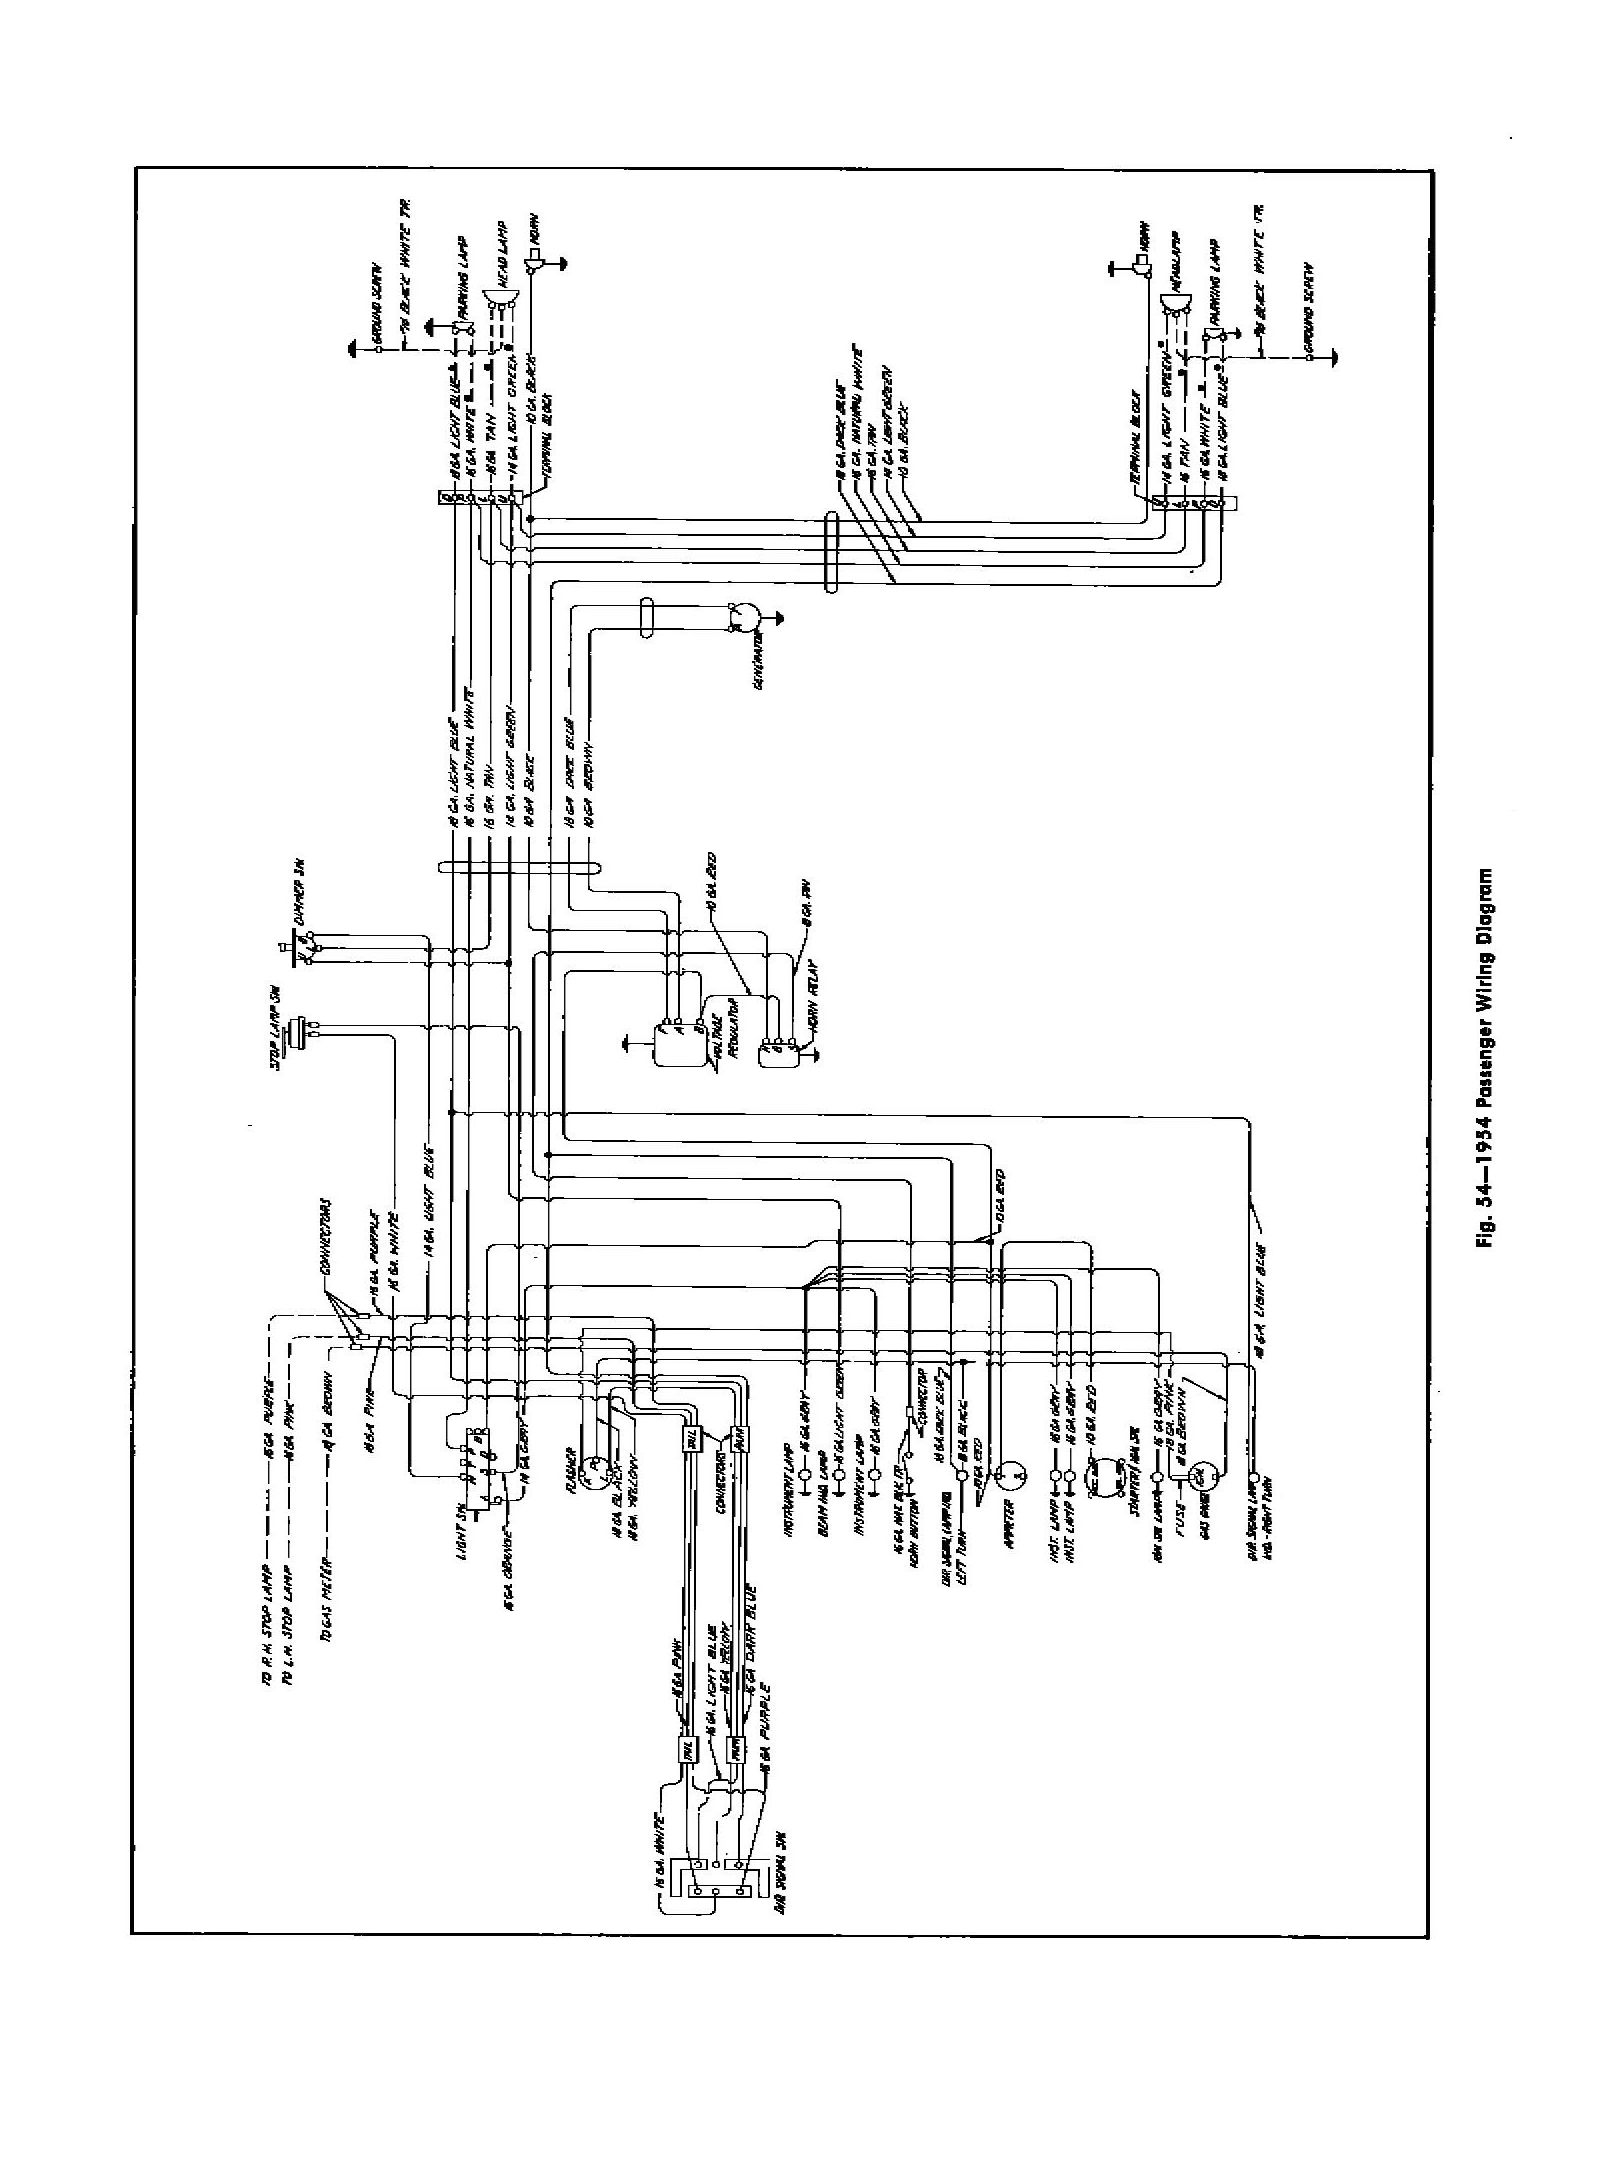 54car1 chevy wiring diagrams Basic Circuit Schematics at mifinder.co